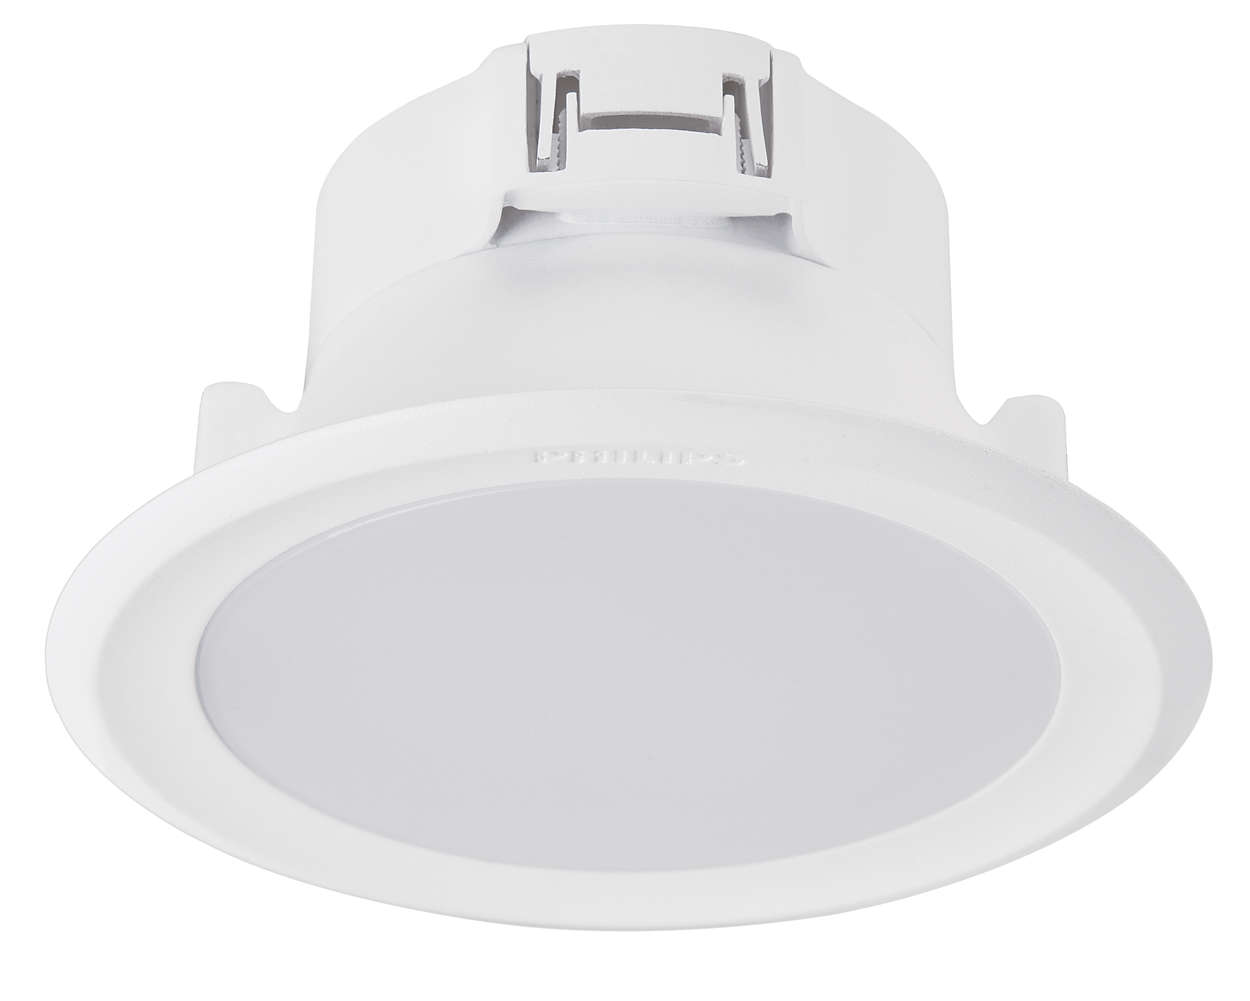 Recessed spot light 440834066 philips recessed spot light aloadofball Images